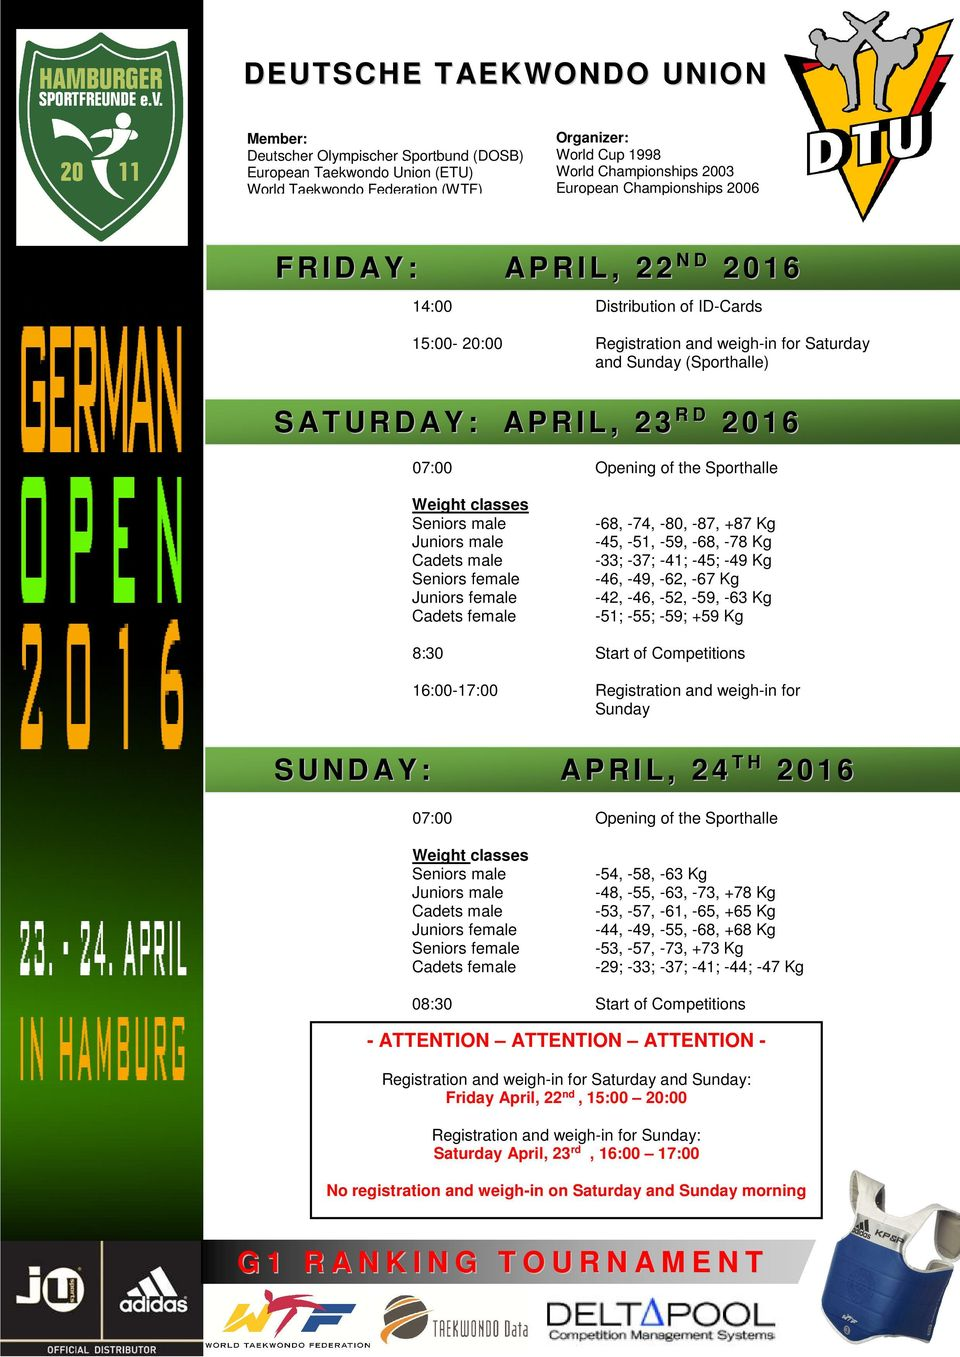 -46, -52, -59, -63 Kg -51; -55; -59; +59 Kg 8:30 Start of Competitions 16:00-17:00 Registration and weigh-in for Sunday APRIL, 24TH 2016 SUNDAY: 07:00 Opening of the Sporthalle Weight classes Seniors